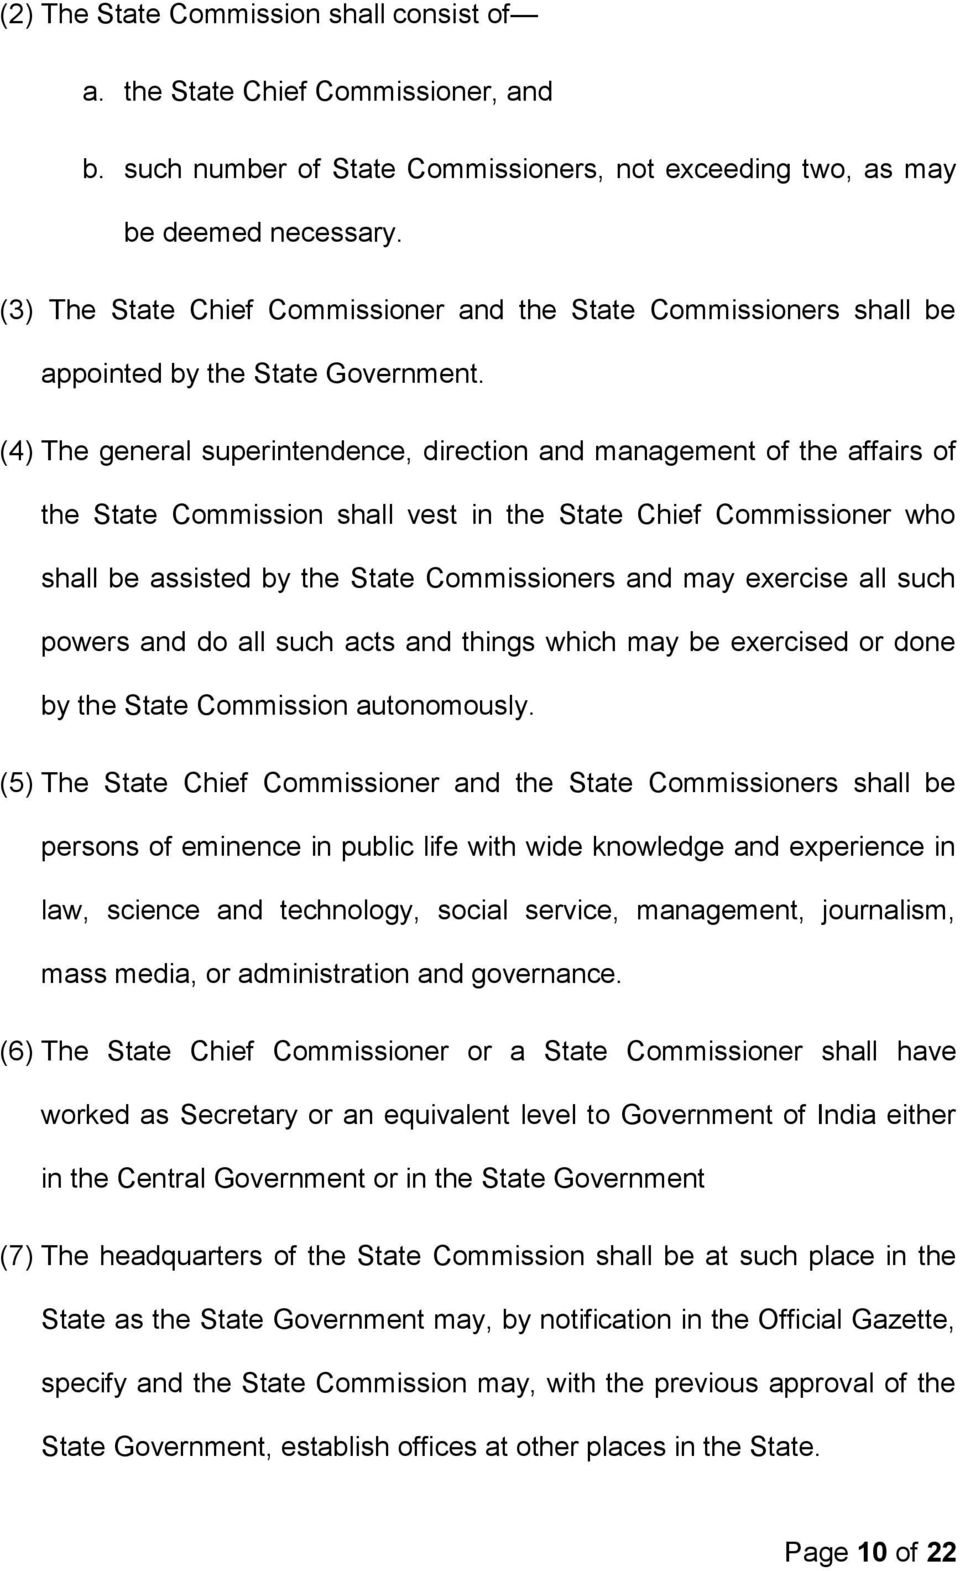 (4) The general superintendence, direction and management of the affairs of the State Commission shall vest in the State Chief Commissioner who shall be assisted by the State Commissioners and may